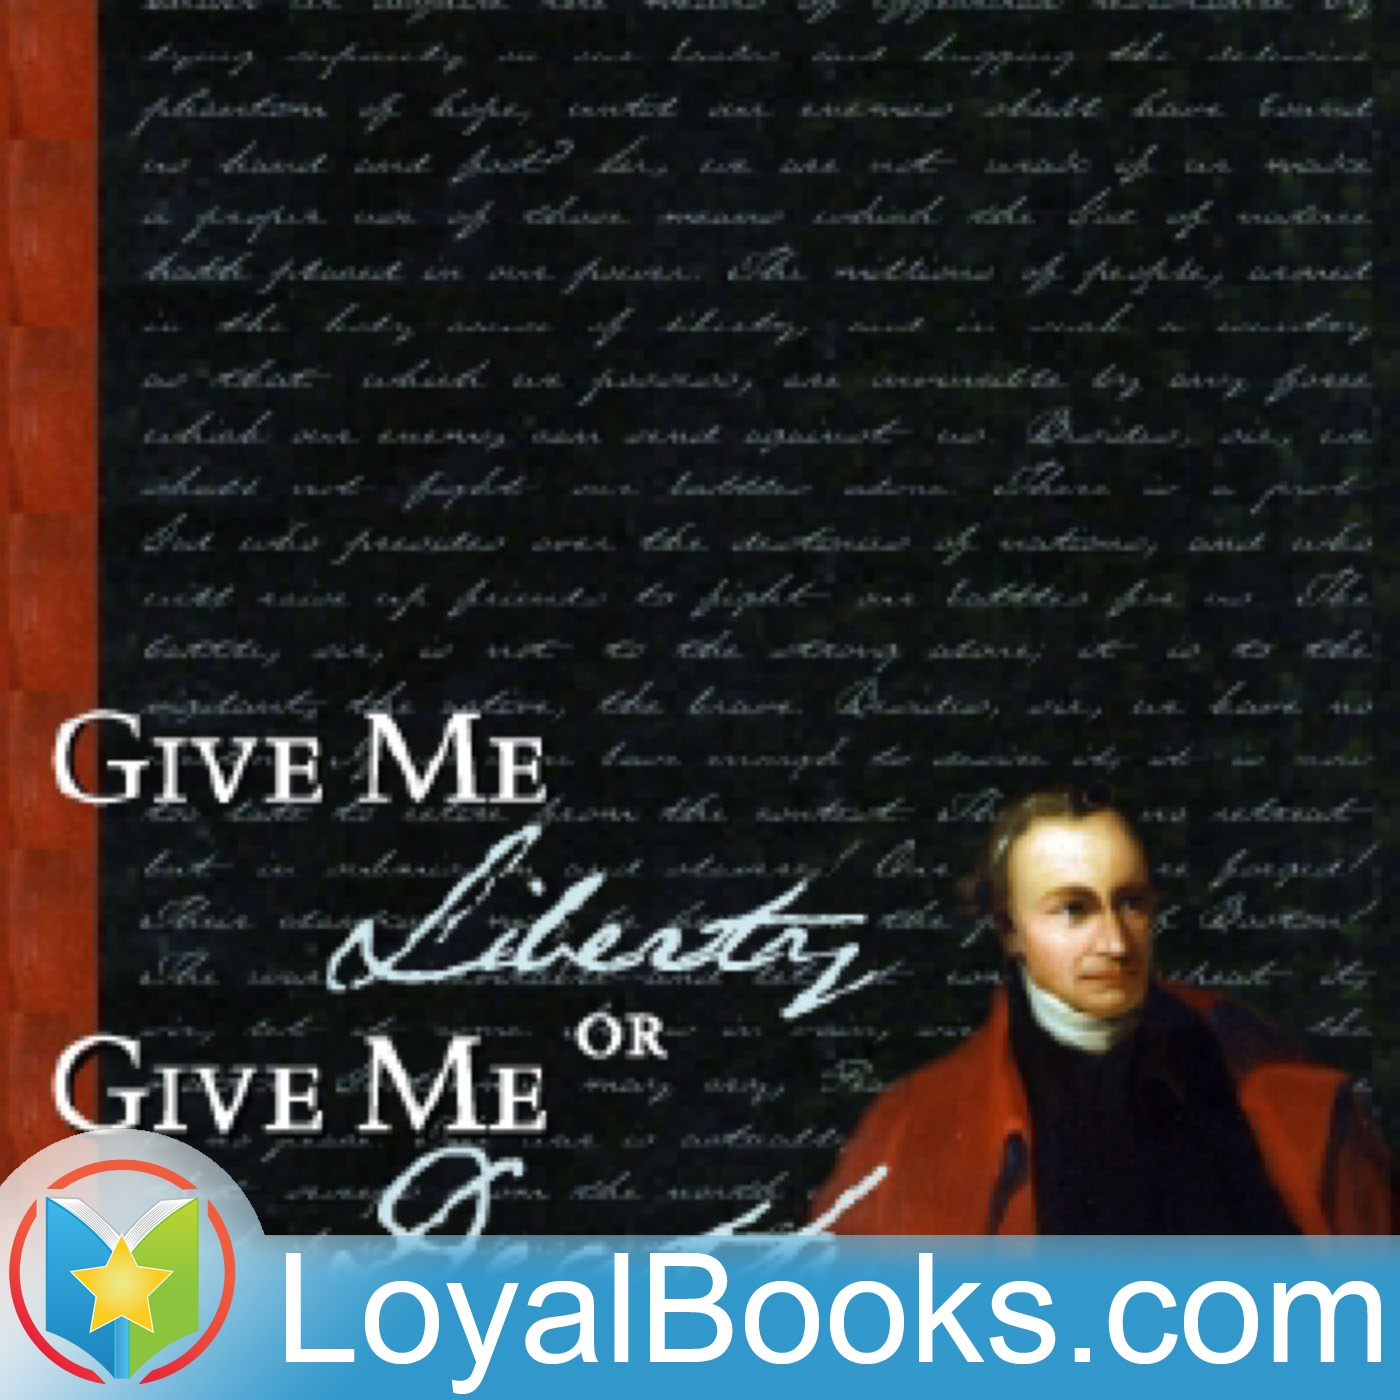 <![CDATA[Give Me Liberty or Give Me Death by Patrick Henry]]>